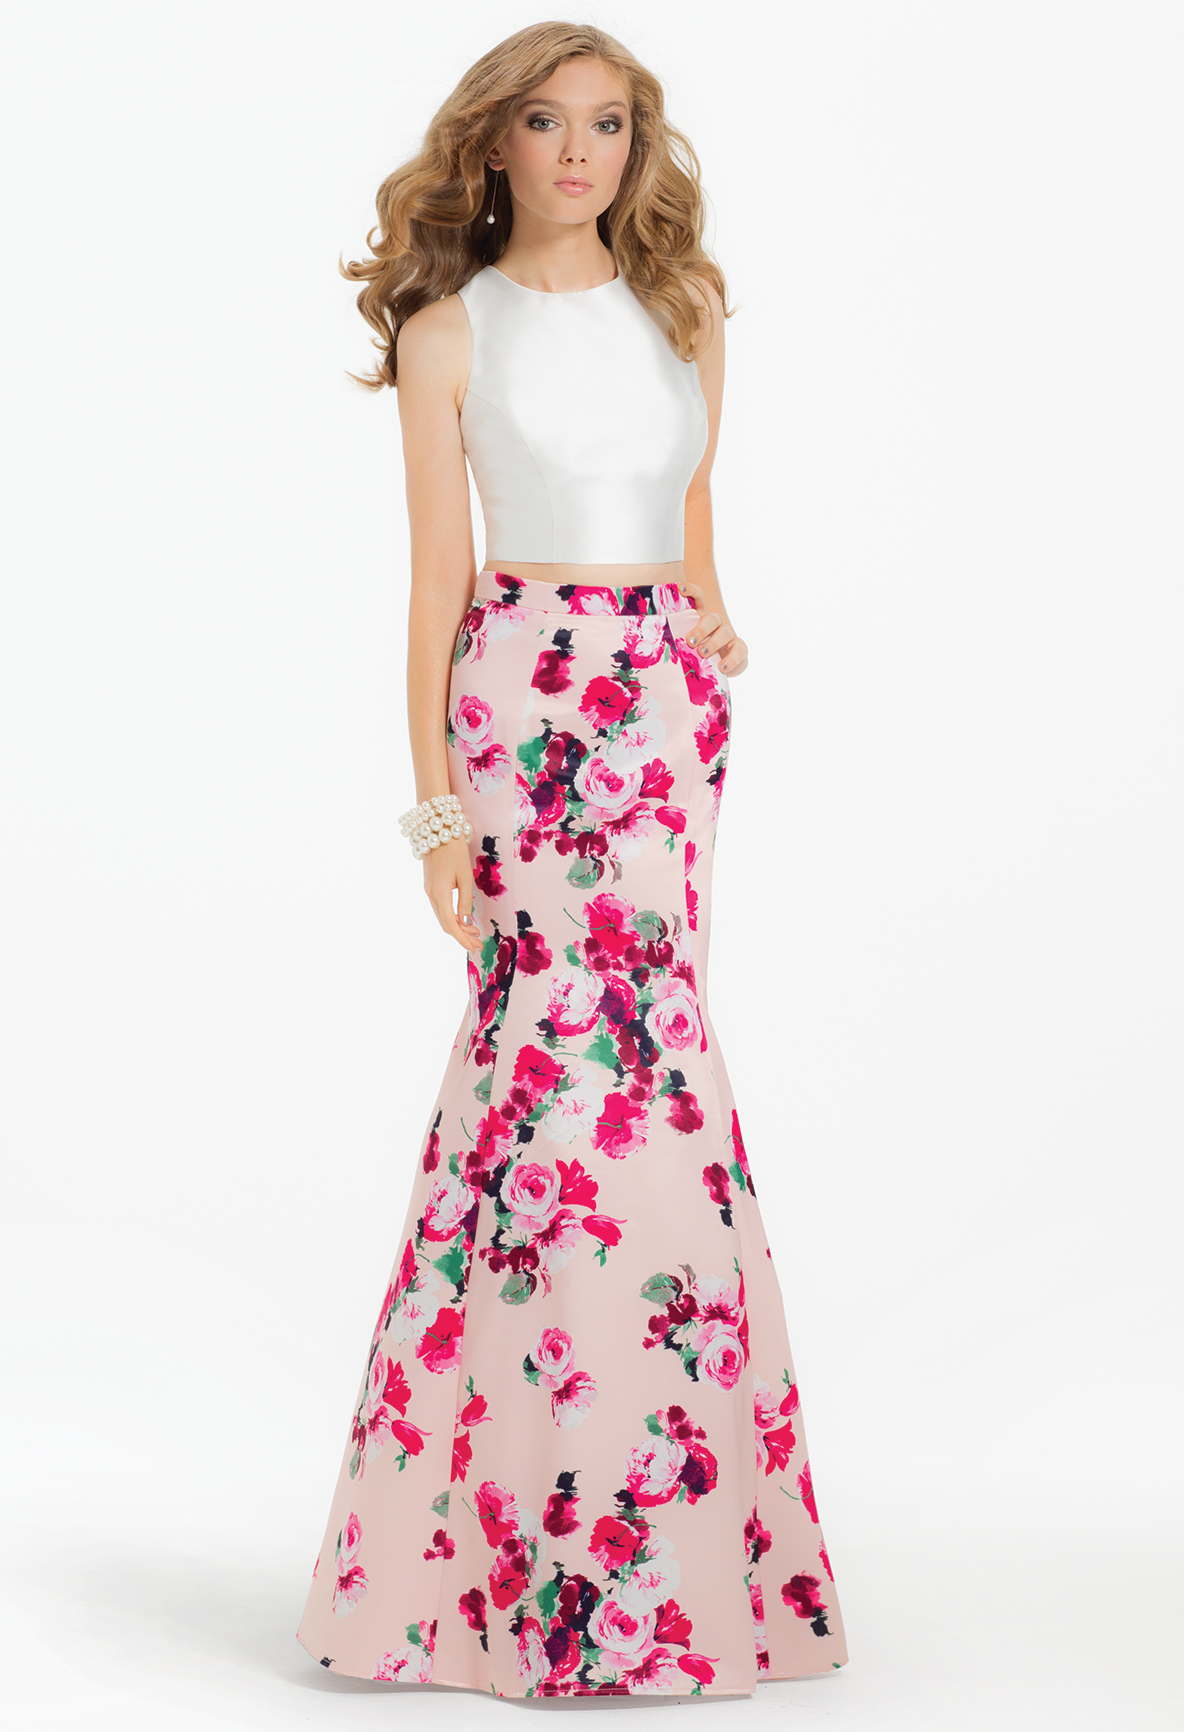 Floral Two-Piece Dress #camillelavie #CLVprom | PROM DRESSES: TWO ...